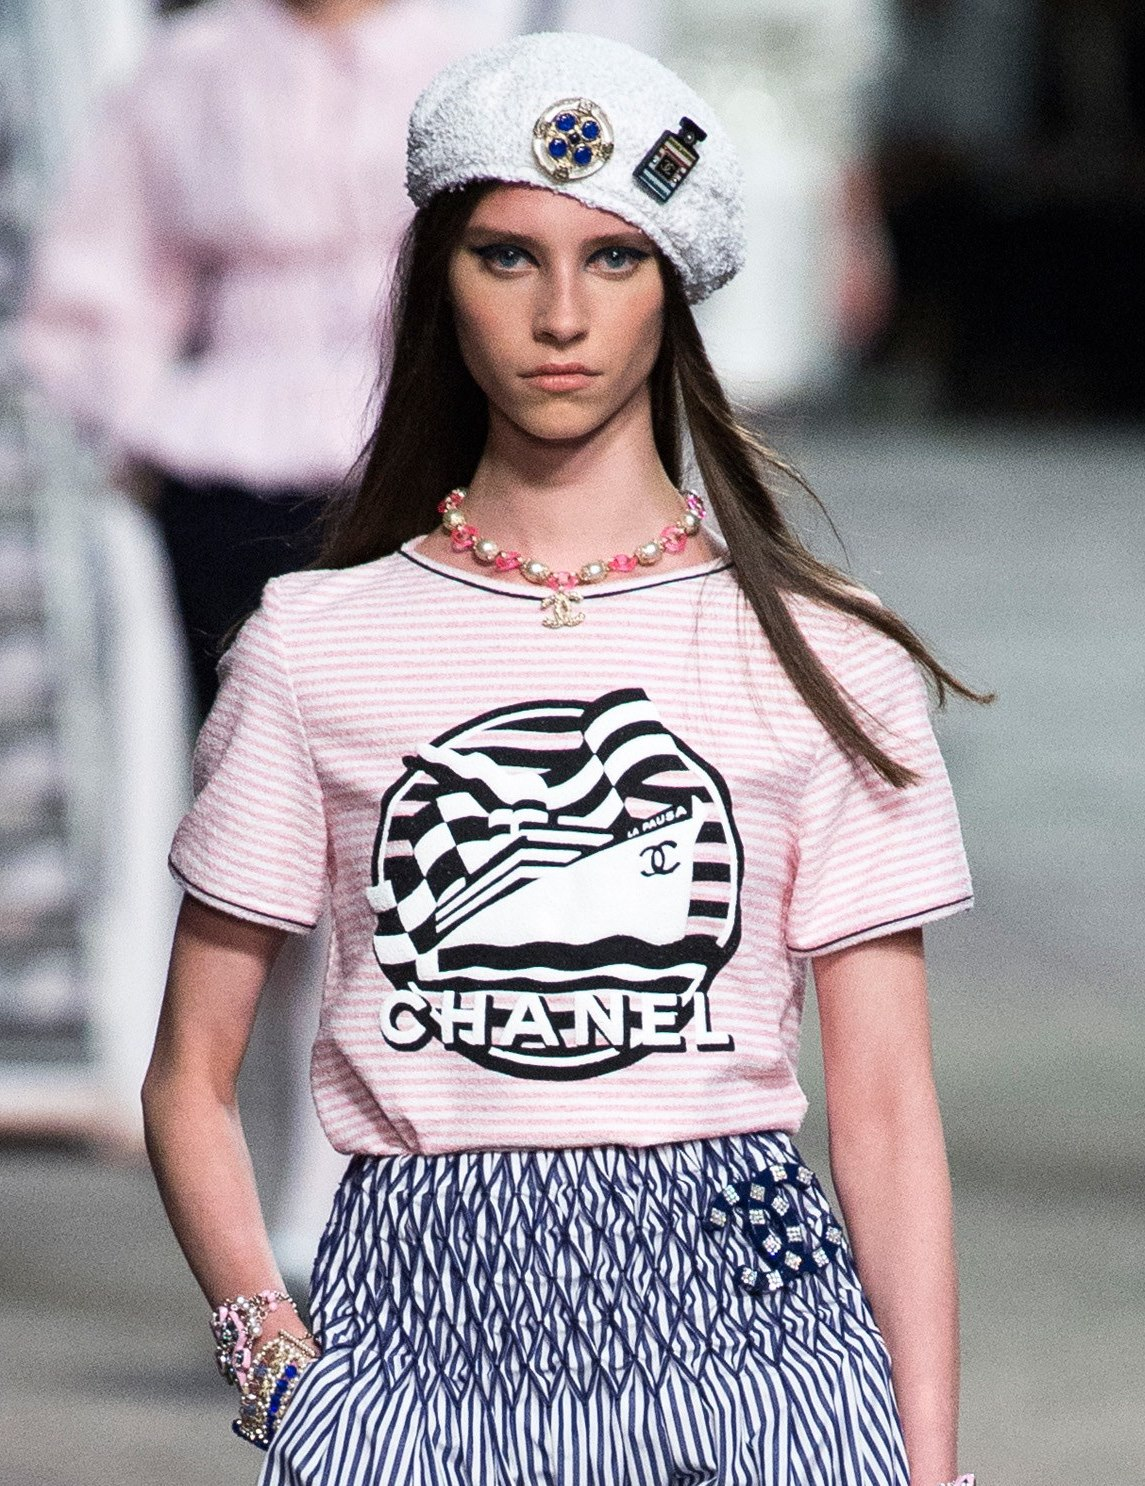 Watch Chanel Cruise 2019 Campaign Shot In Cuba video